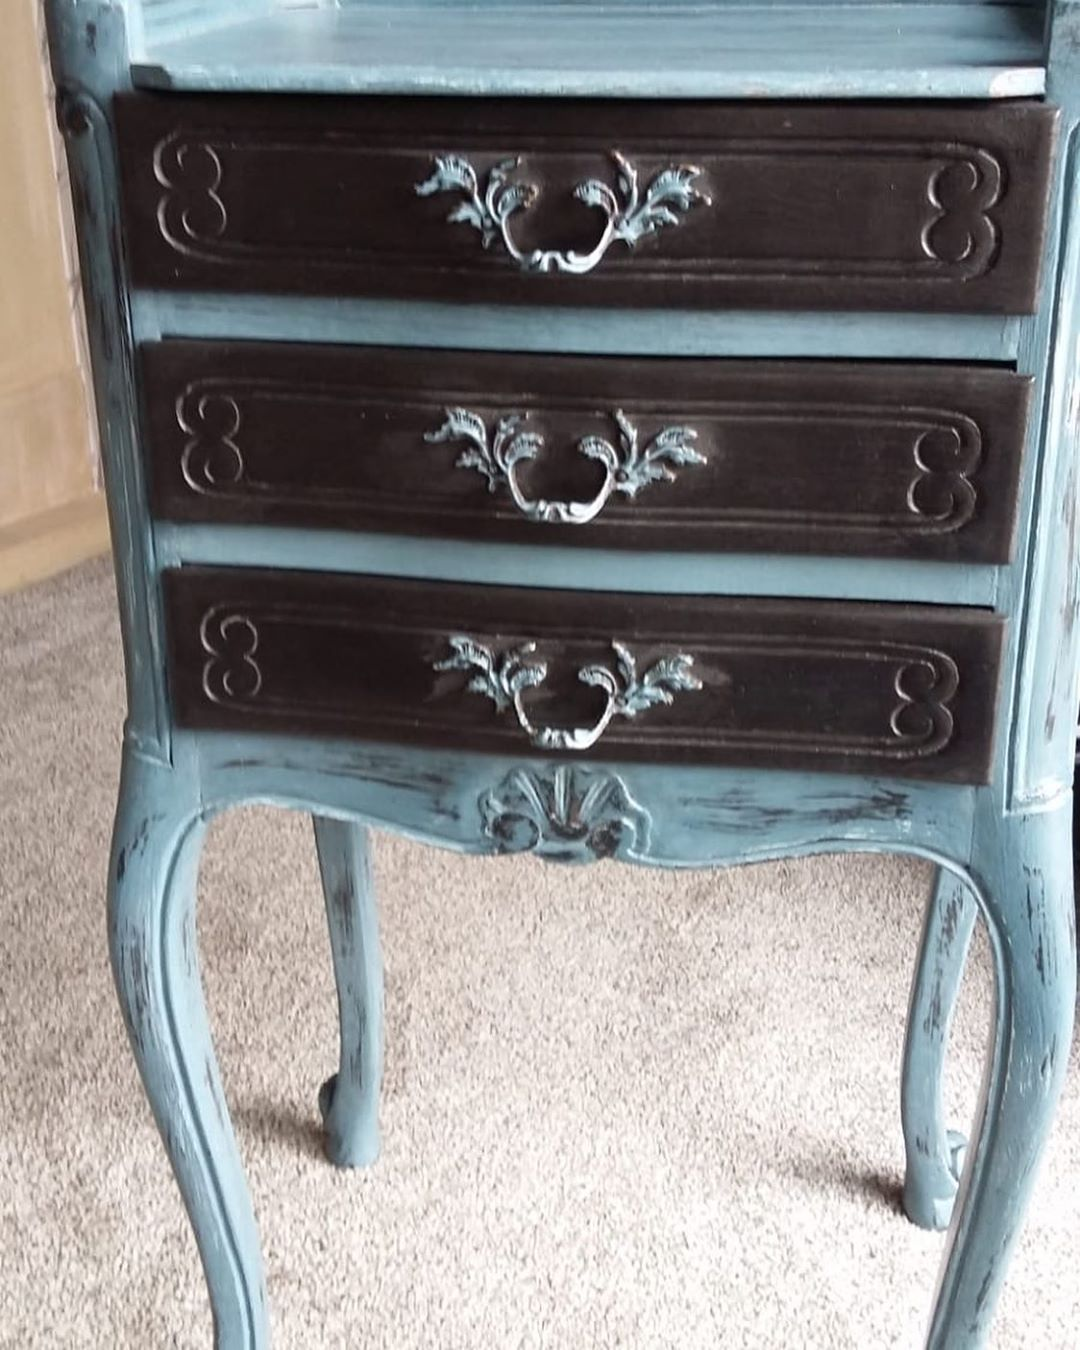 Telephone Table With Contrasting Drawers Upcyclingfurniture Furnitureinspiration Upcycling Shabbyc Furniture Inspiration Upcycled Furniture Antique Dresser